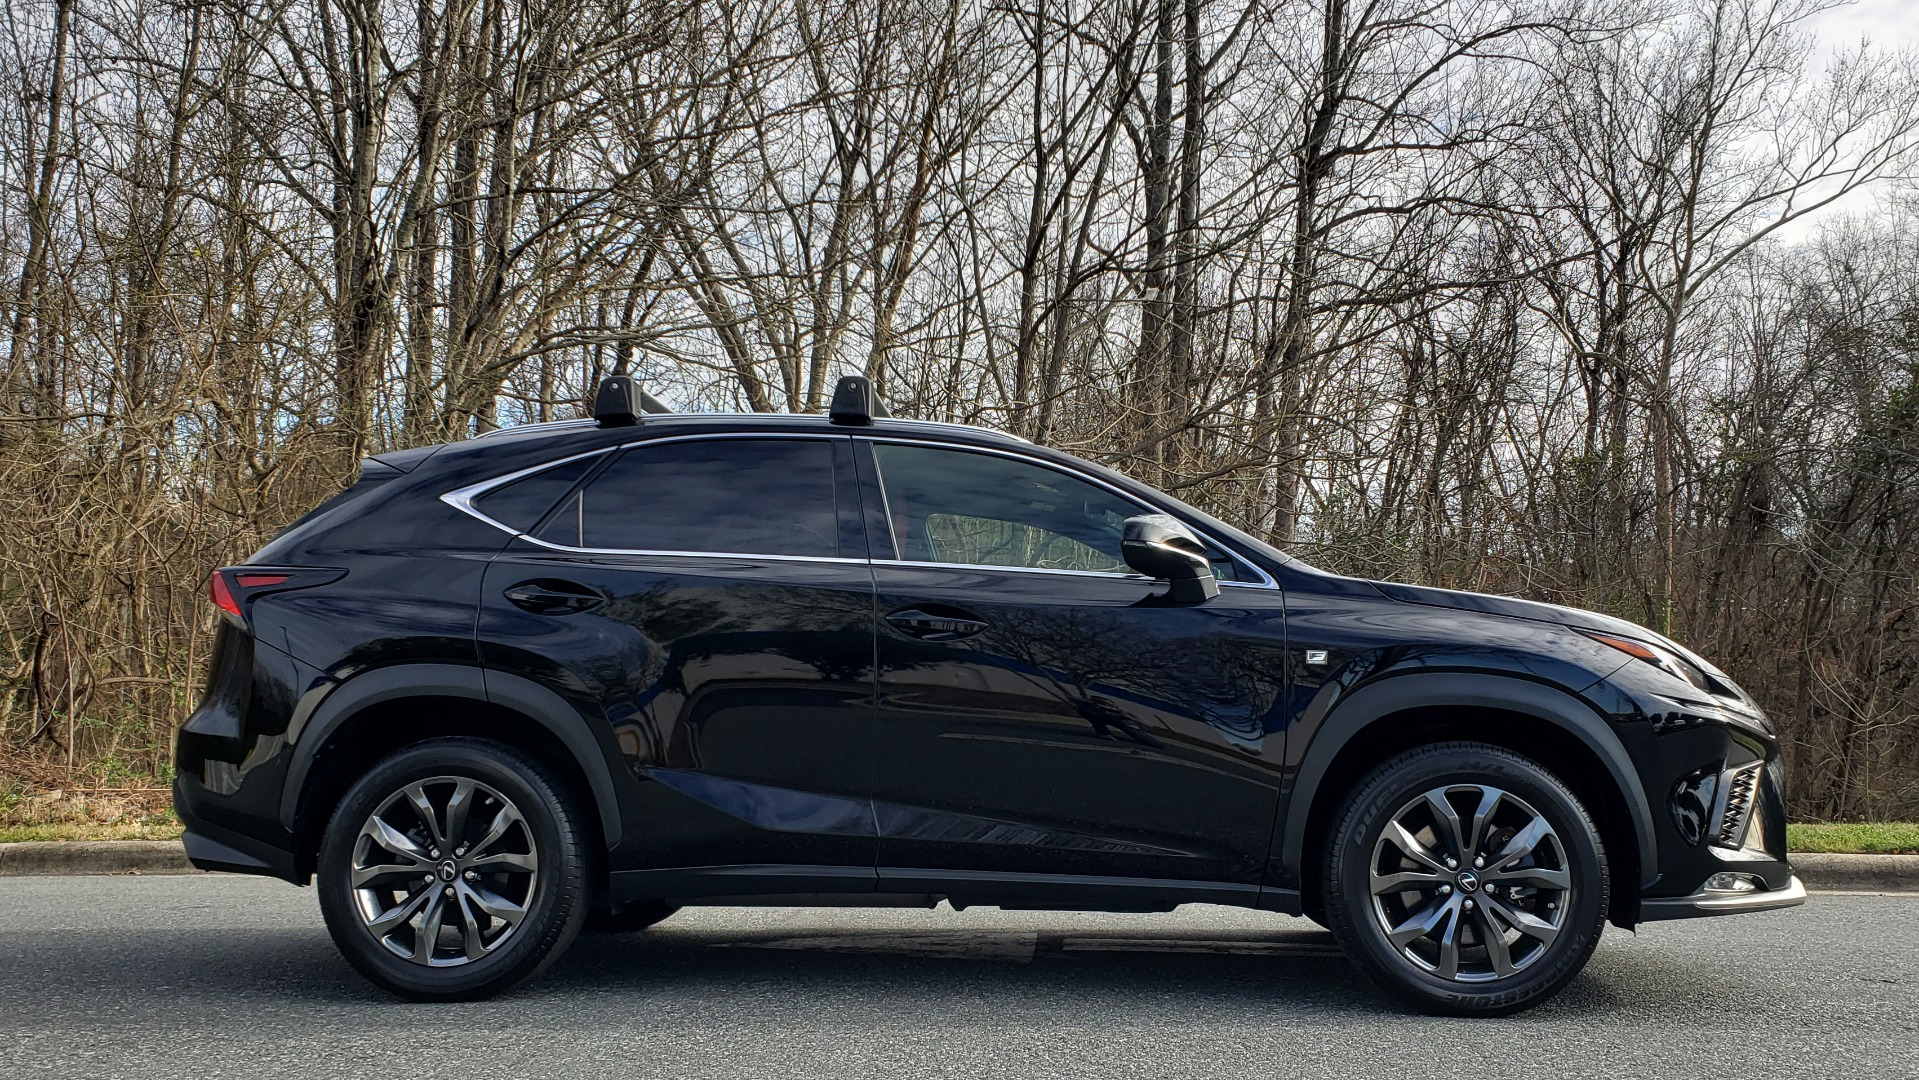 Used 2018 Lexus NX 300 F-SPORT / LEATHER / ACCY PKG / 18IN WHEELS for sale Sold at Formula Imports in Charlotte NC 28227 5